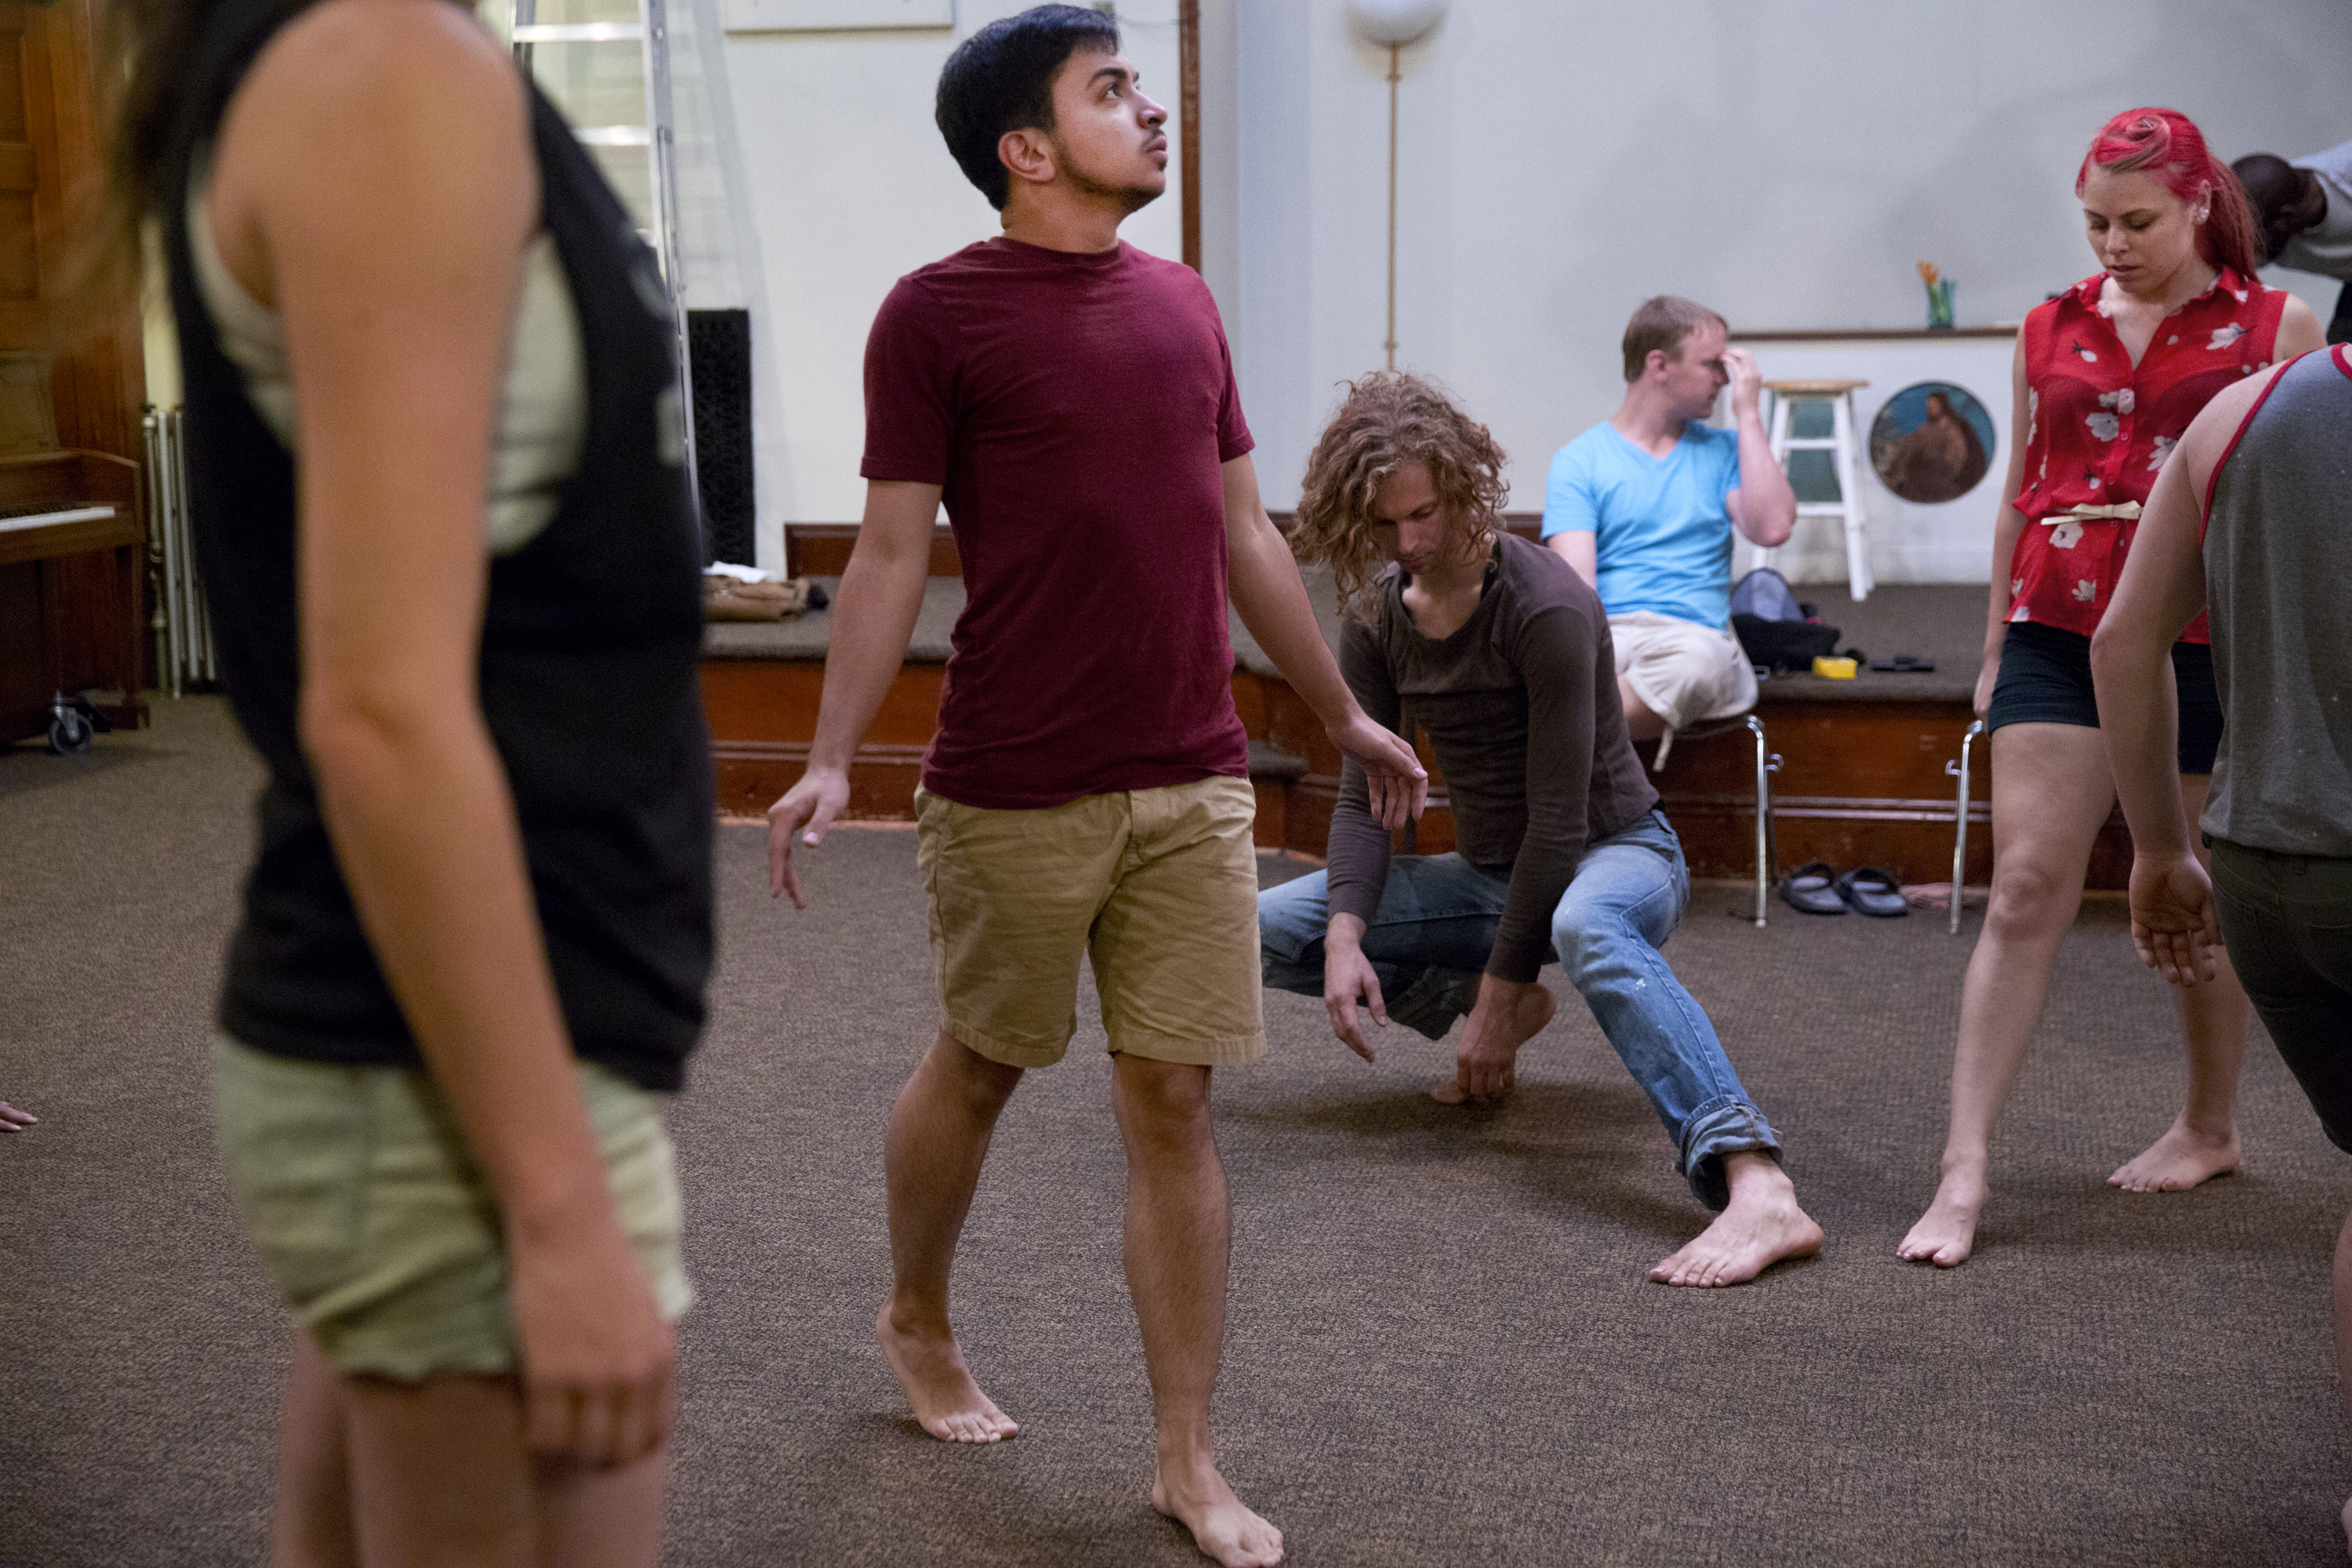 Younes participates in theater rehearsal. Most of the people he interacts with know of his transition, but there are several people who he knows may not.